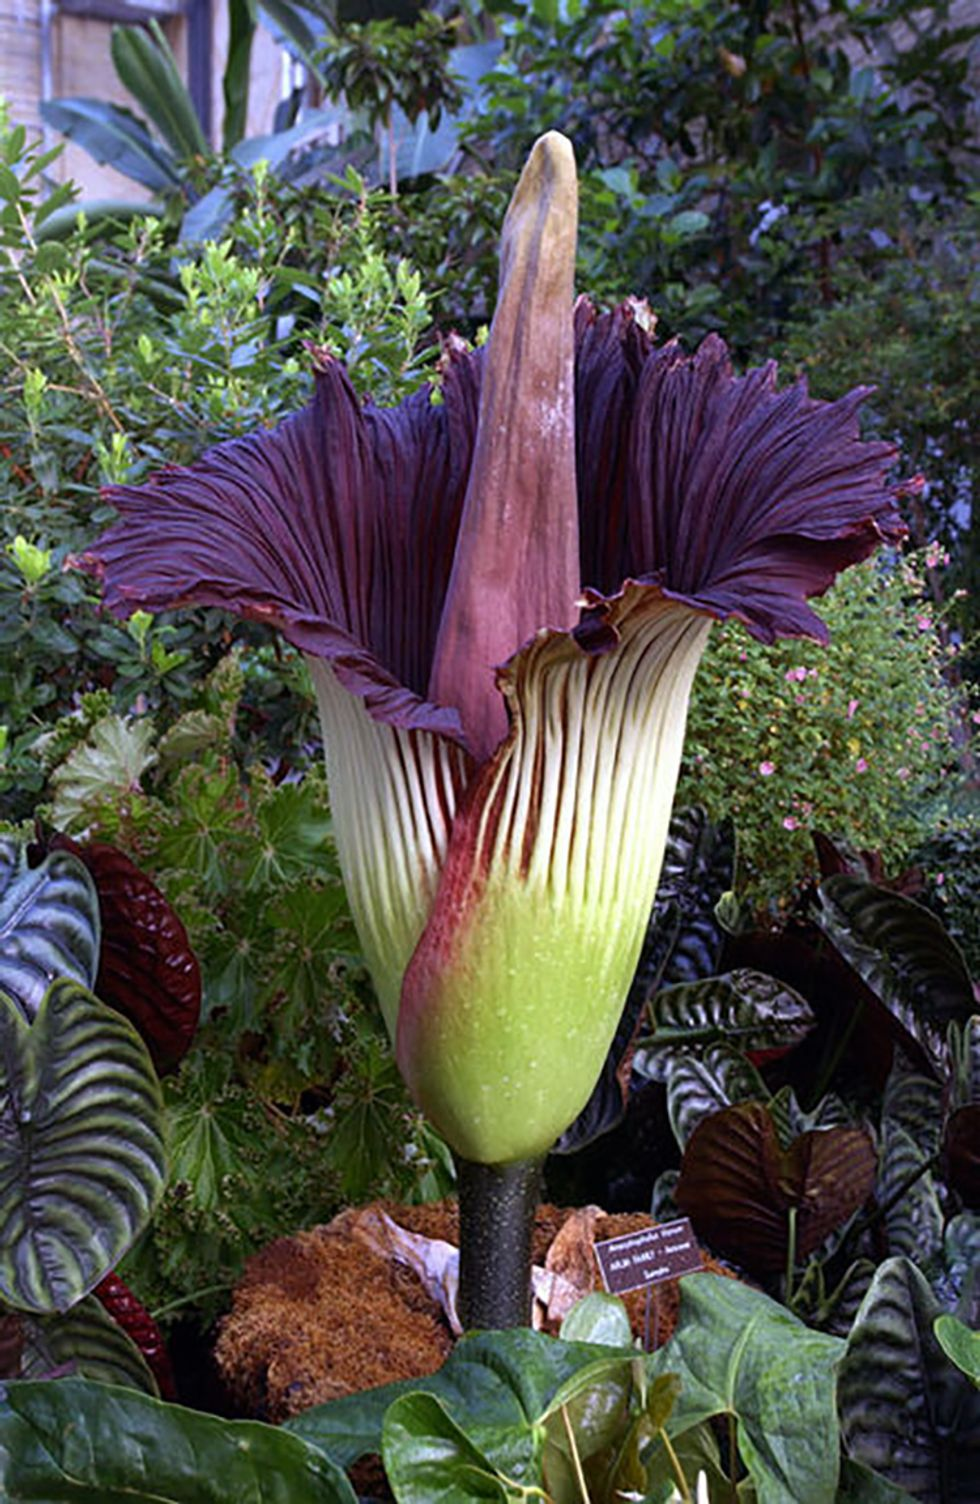 Thousands Watch as Giant Flower That Smells Like Death Blooms for First Time in a Decade